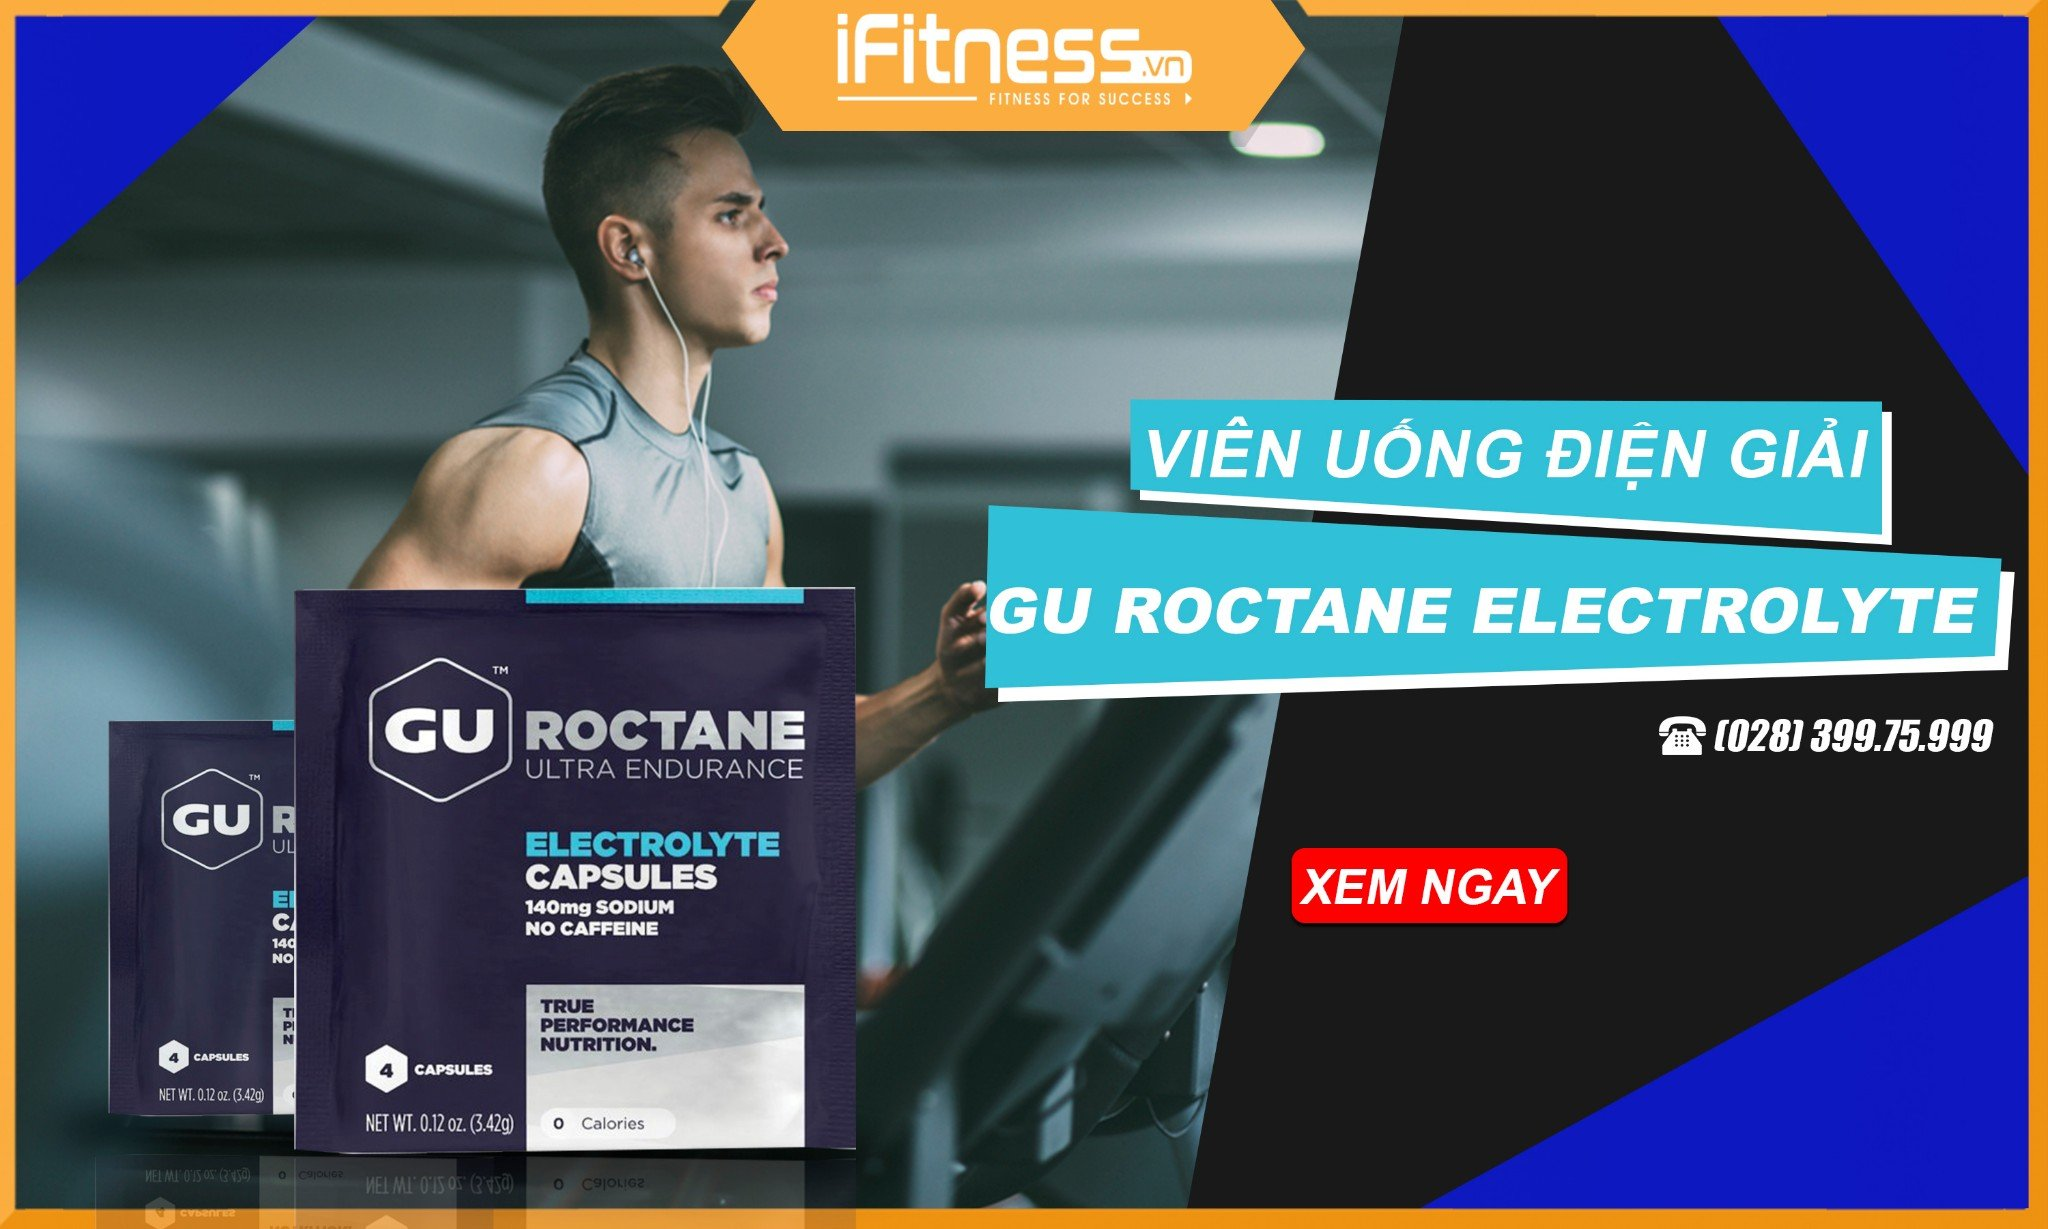 gu roctance electrolyte capsules fb cover